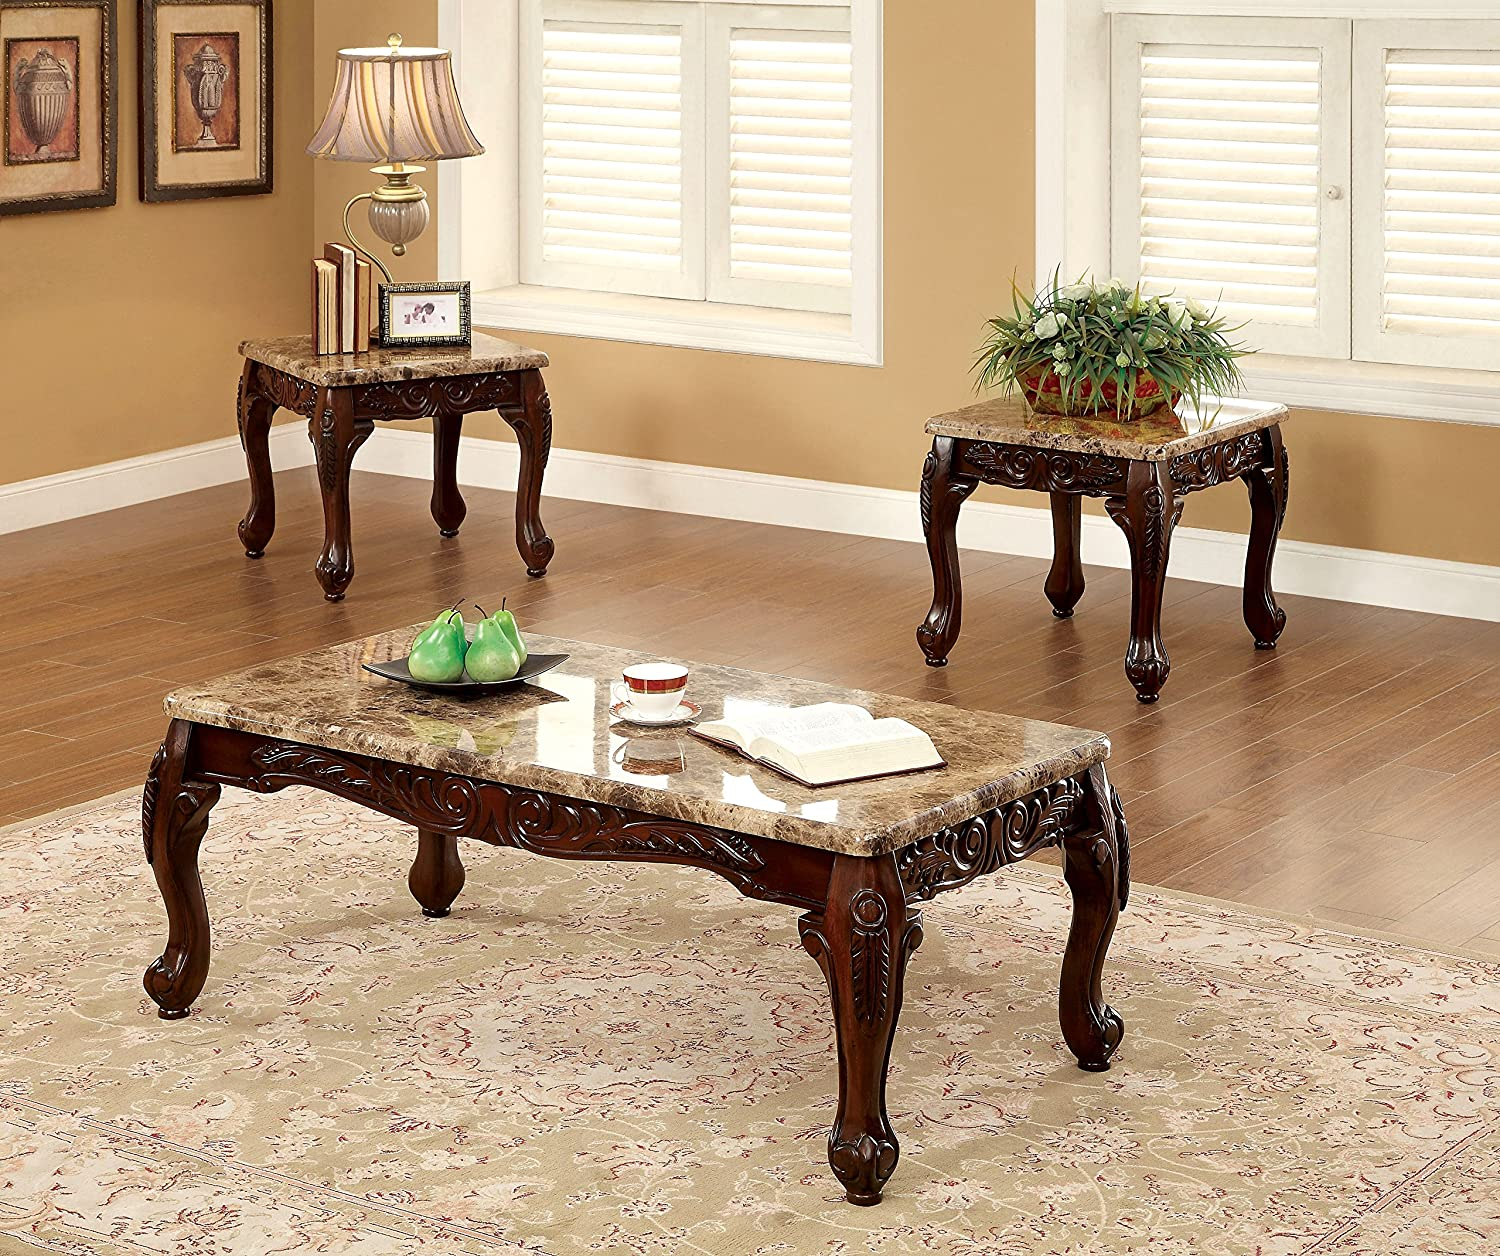 Amazoncom Furniture of America Beltran 3Piece Traditional Faux